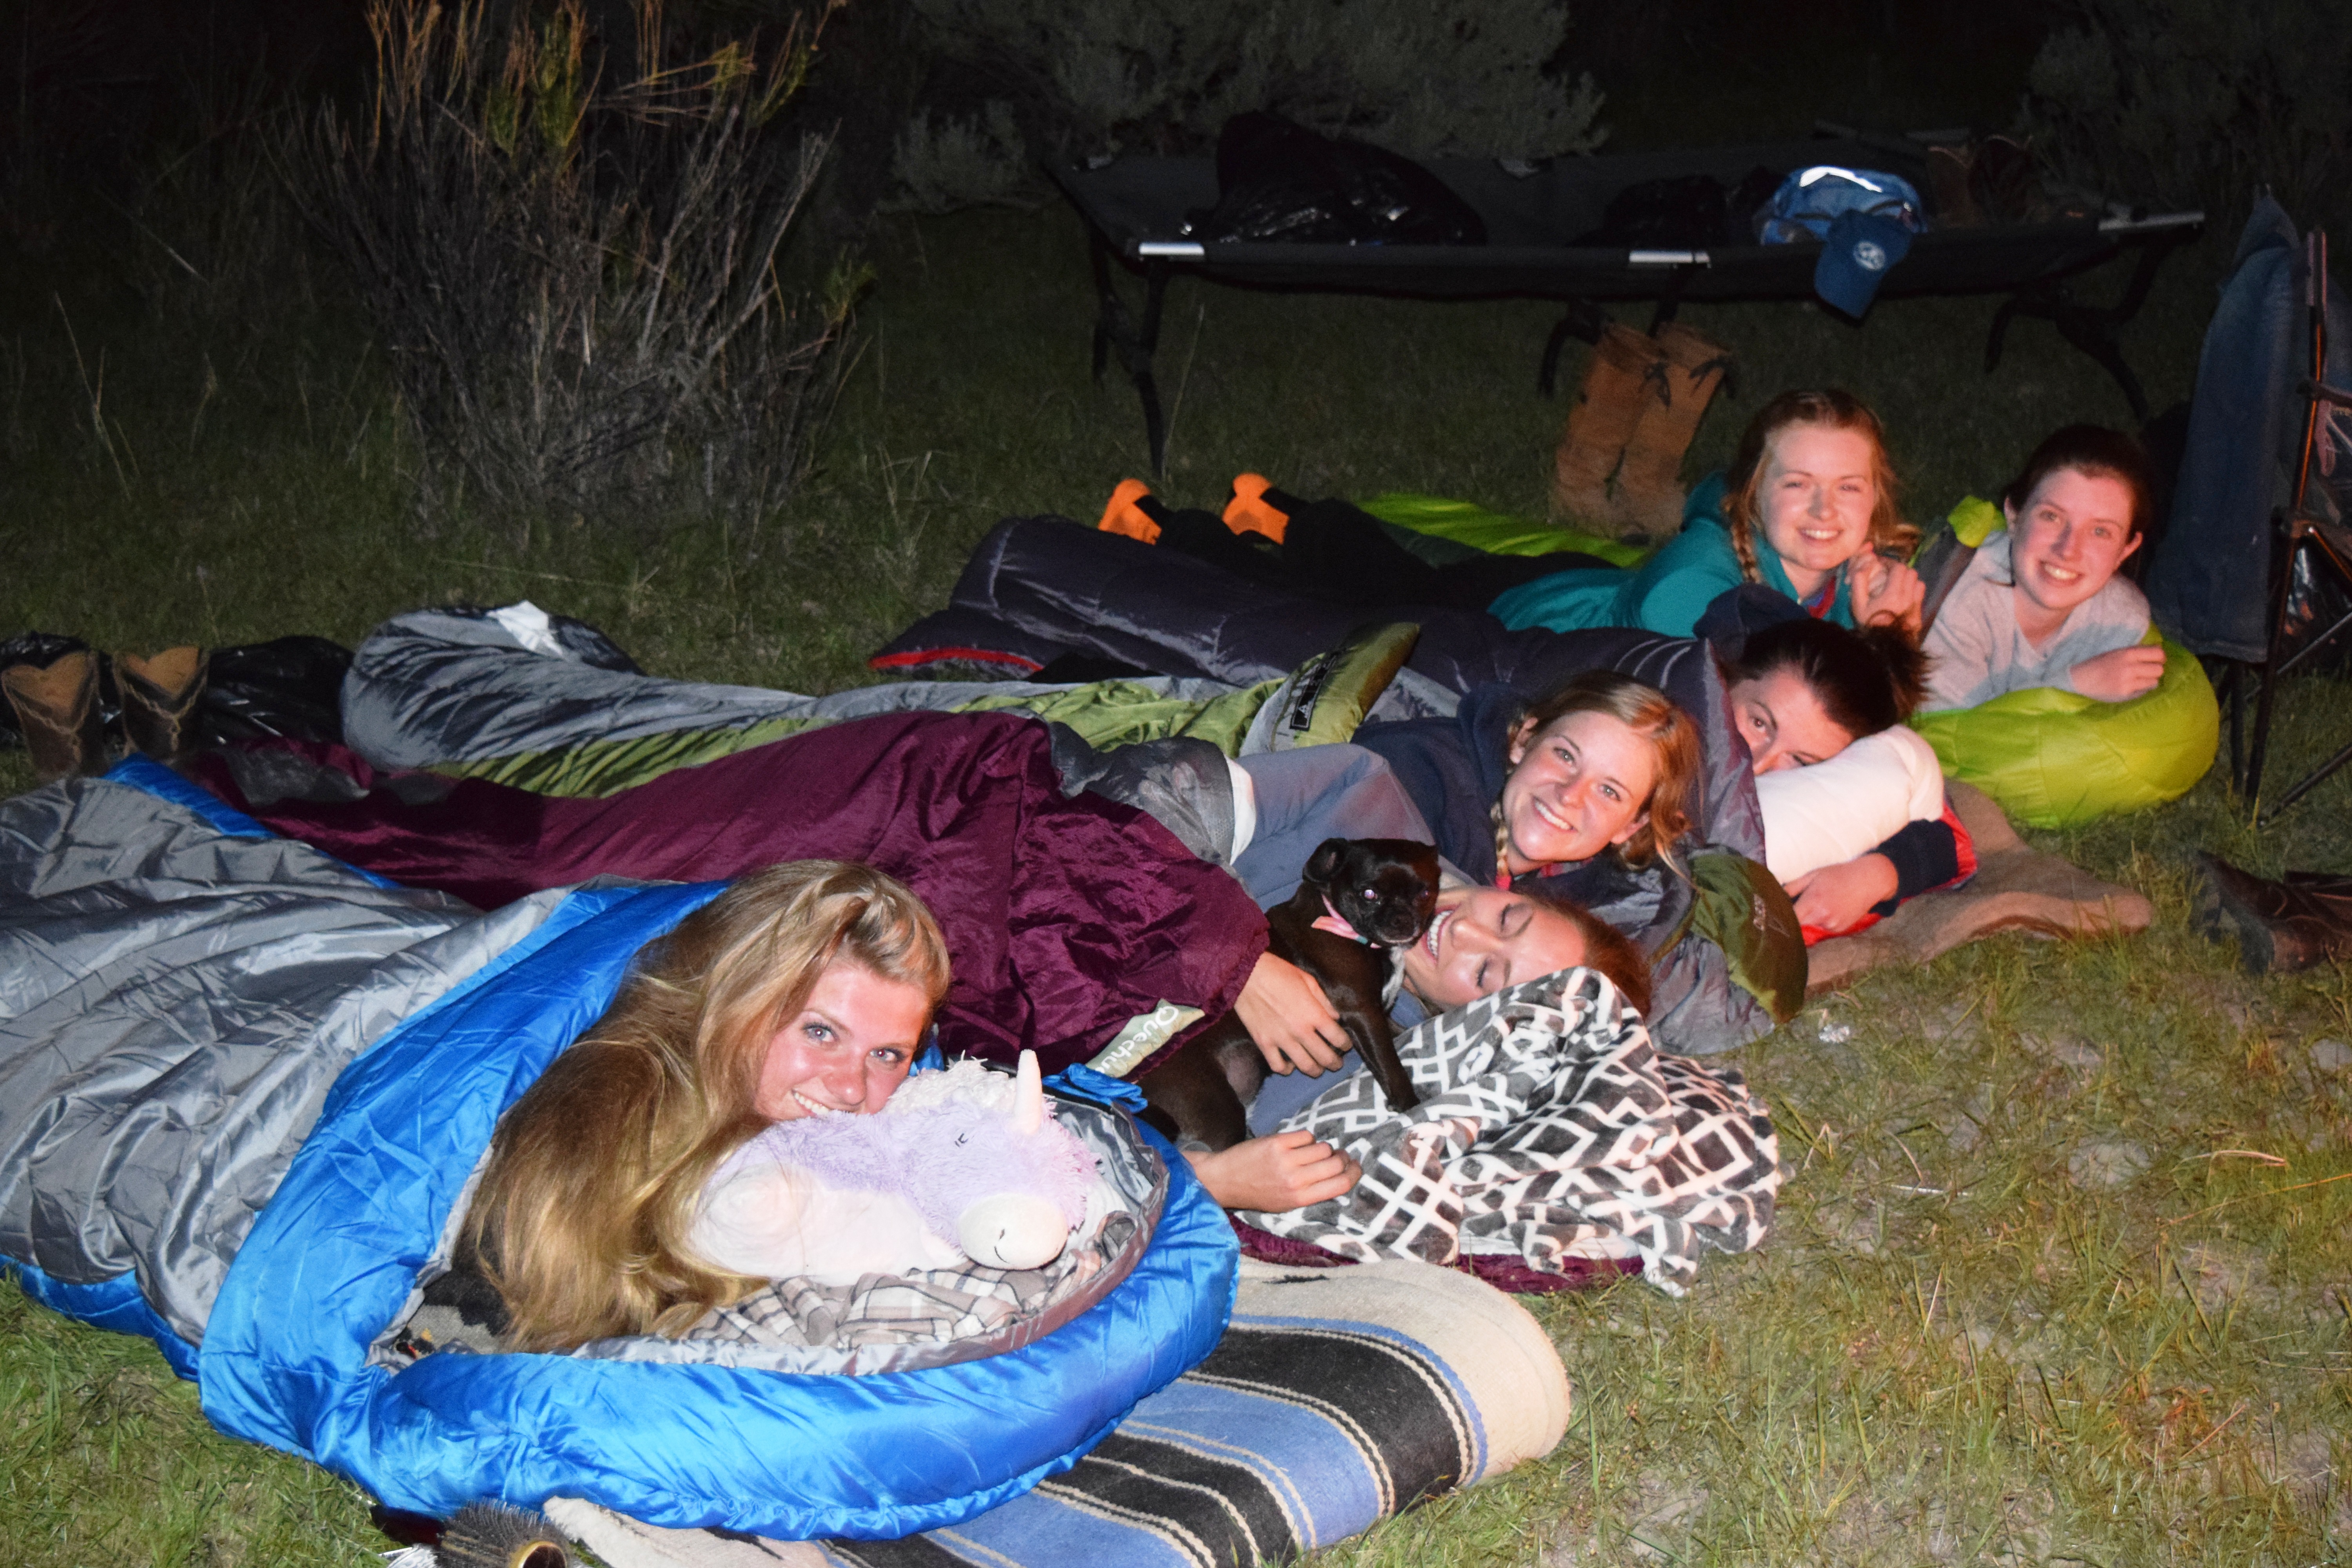 Camping_DSC_0122_CampingOut-a